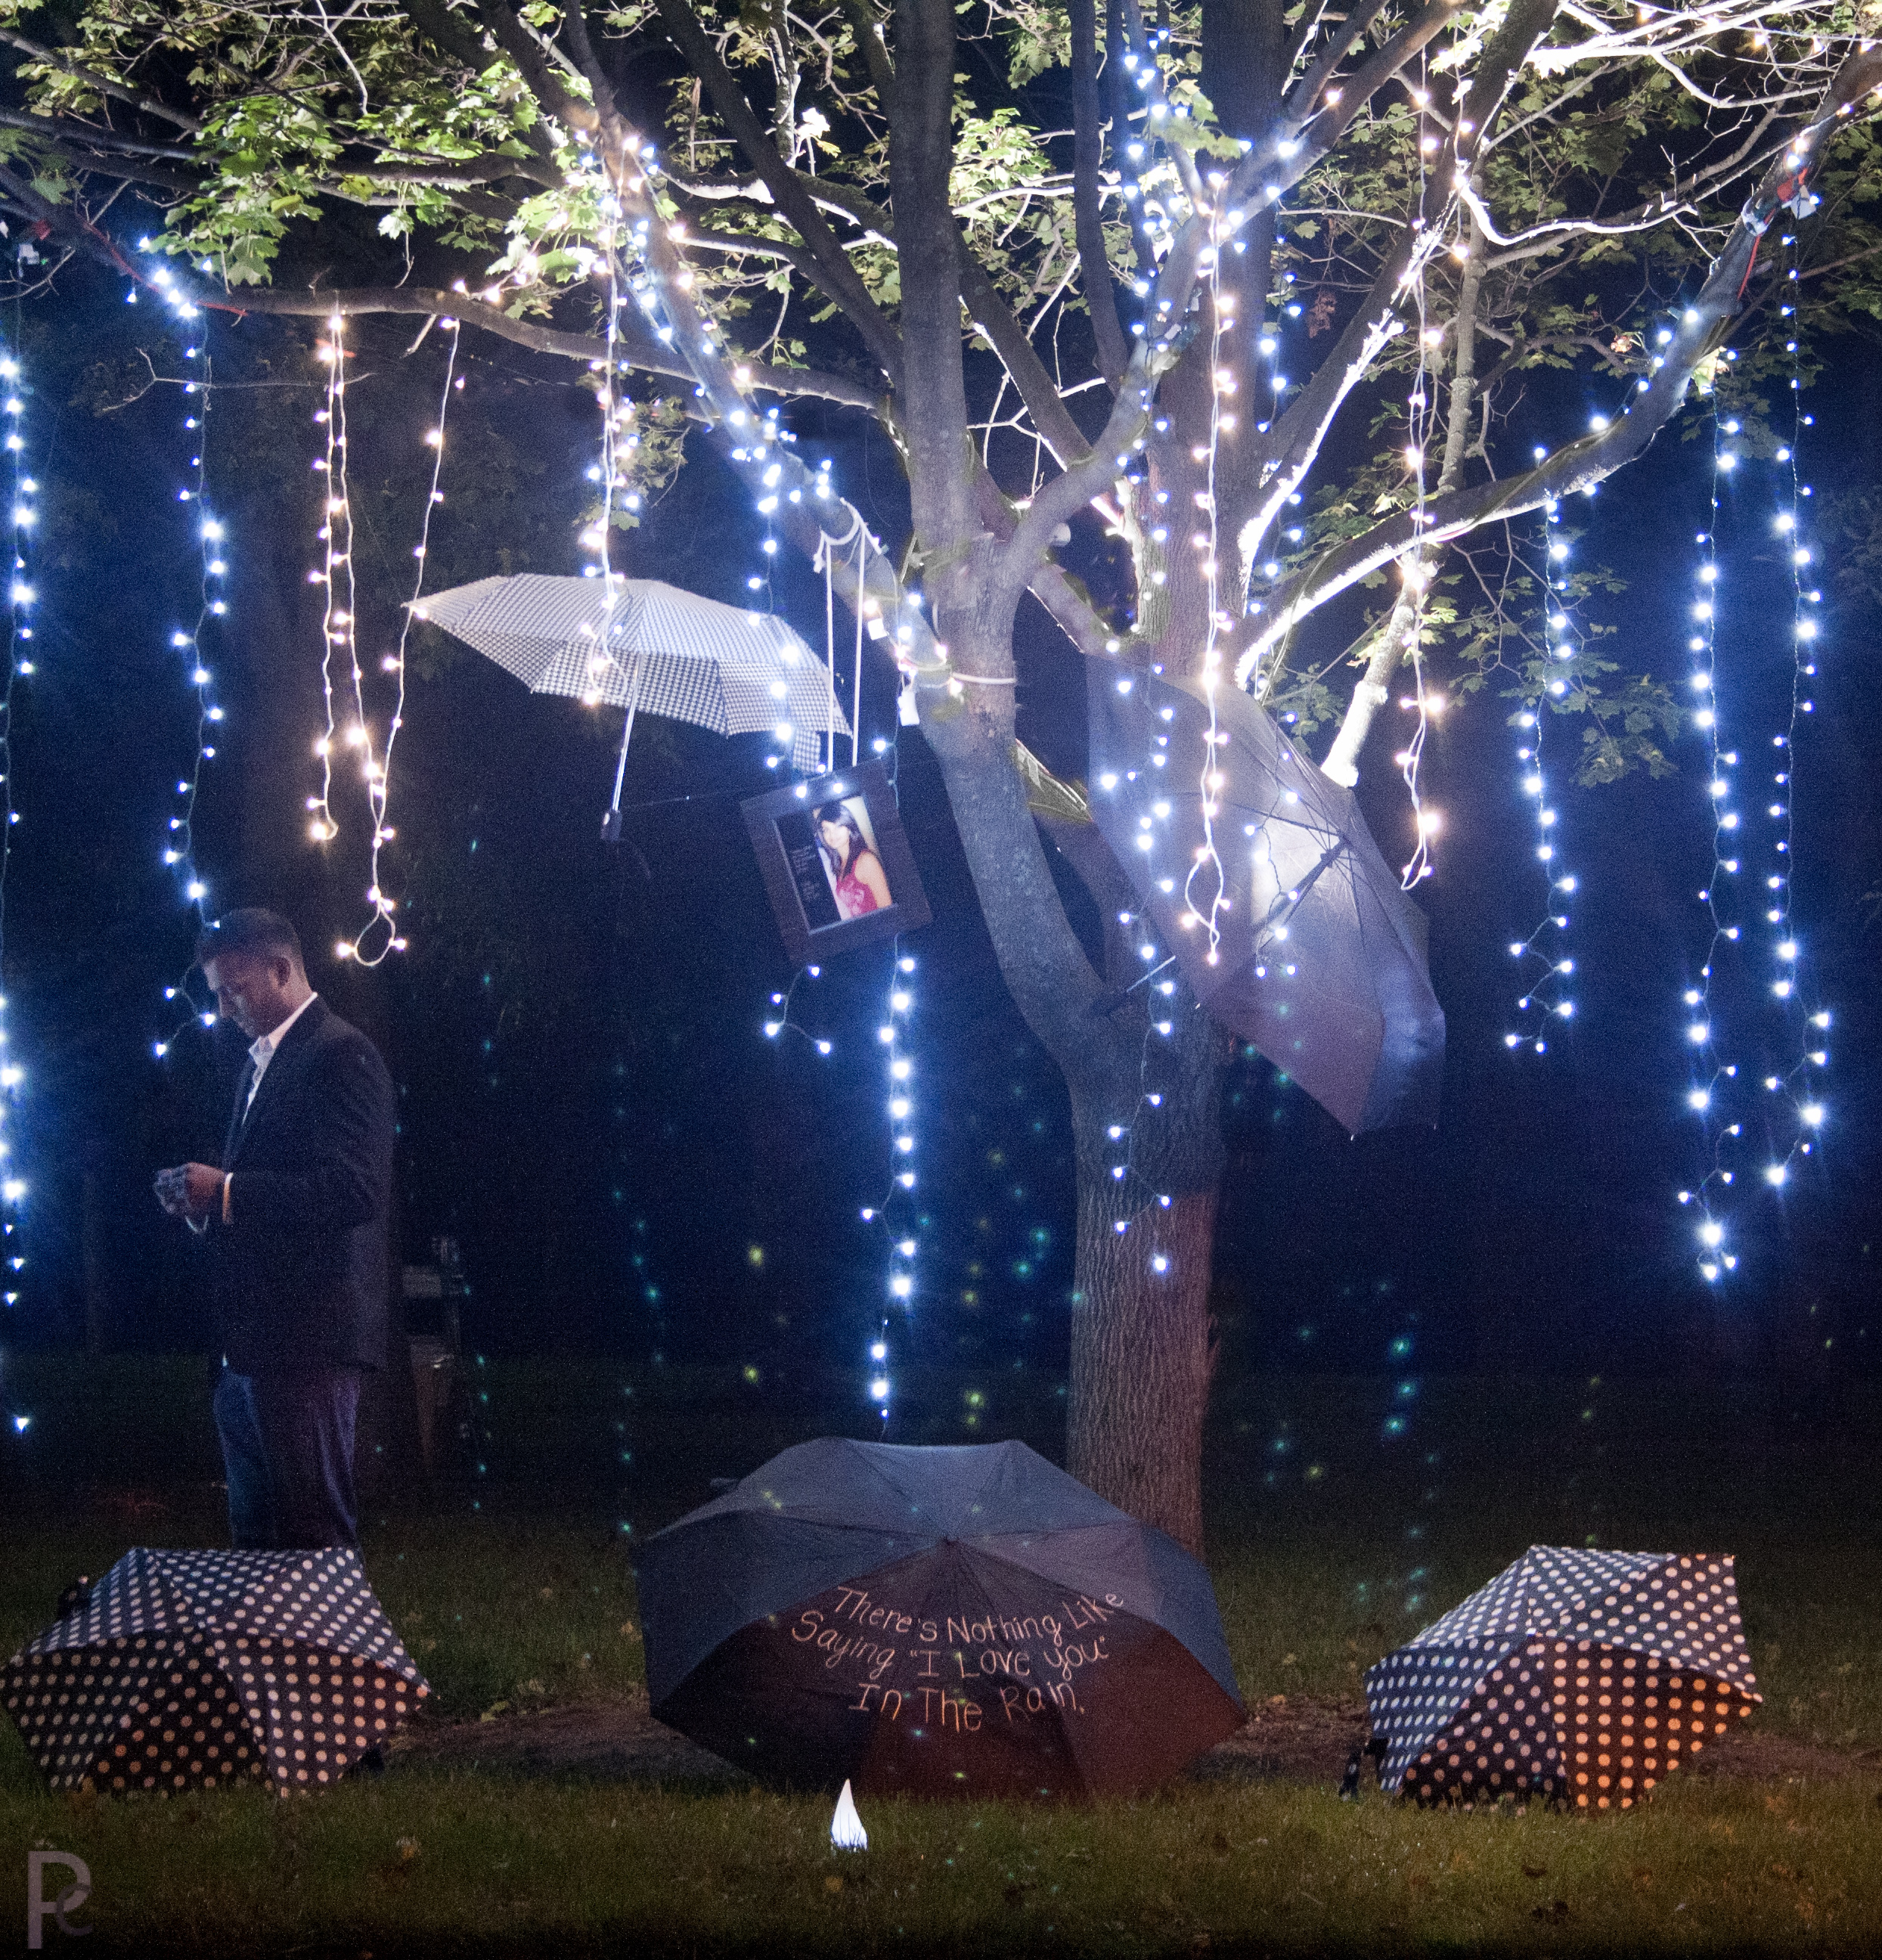 Outdoor Hanging Solar Lights picture on hello fall marriage proposal in lights inspiration with Outdoor Hanging Solar Lights, Outdoor Lighting ideas 7bf9cf73a4e8c879f3b213a1b9934574